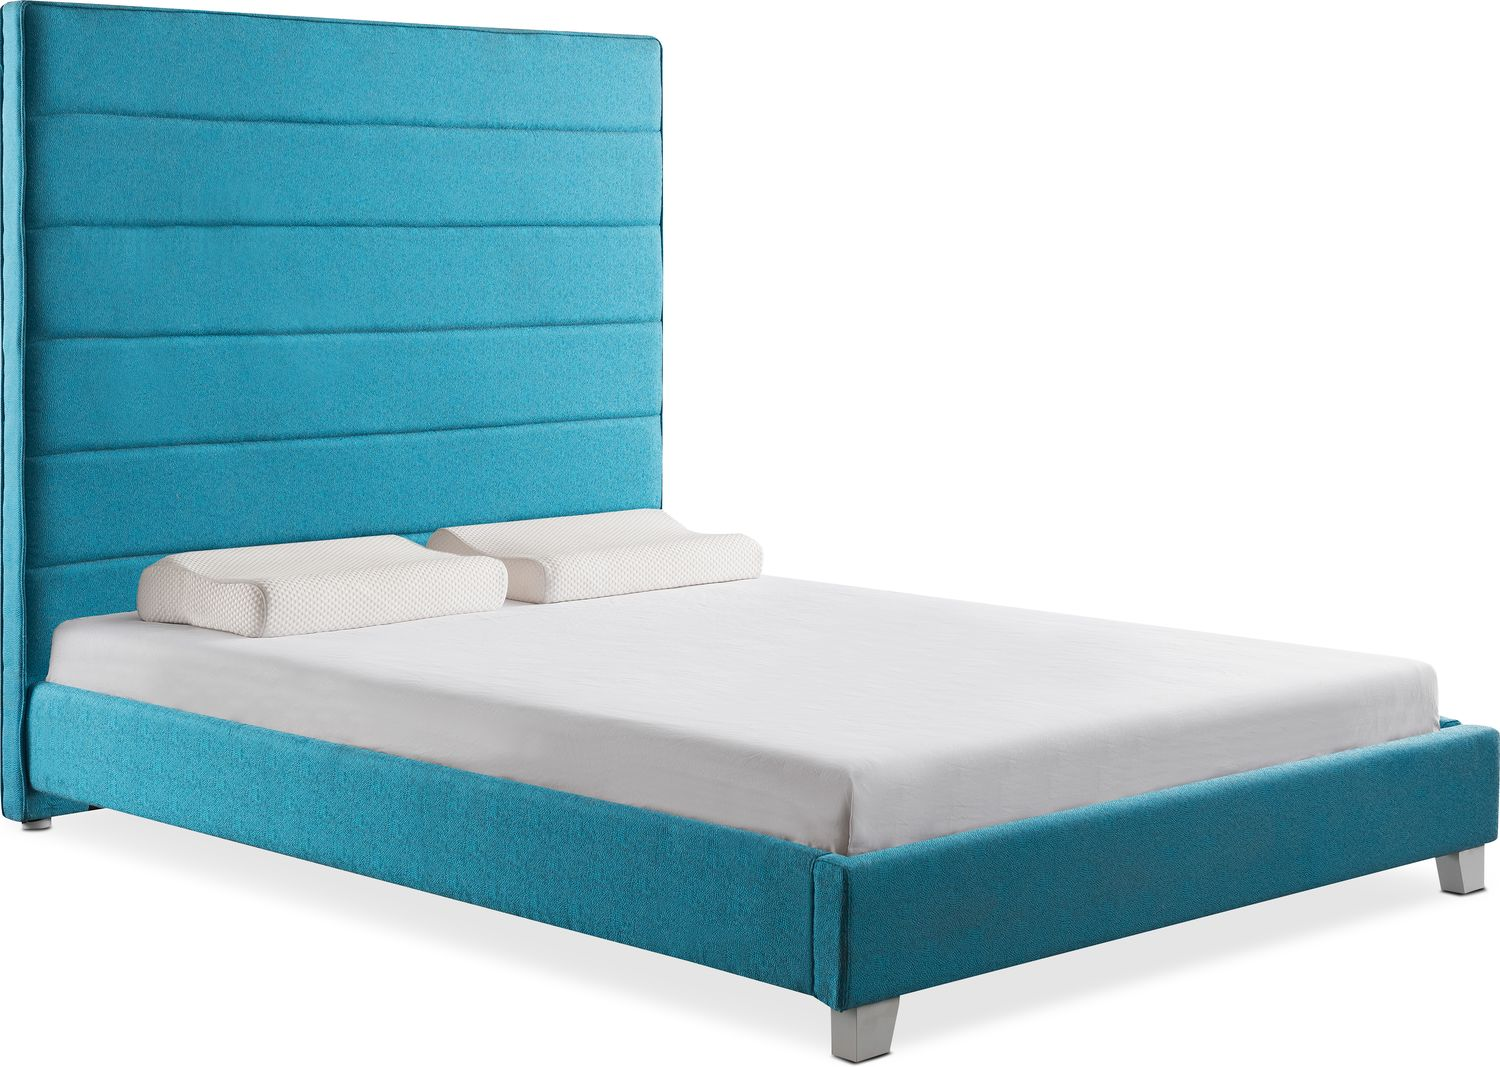 Brighton Queen Upholstered Bed - Teal   Value City Furniture and ...